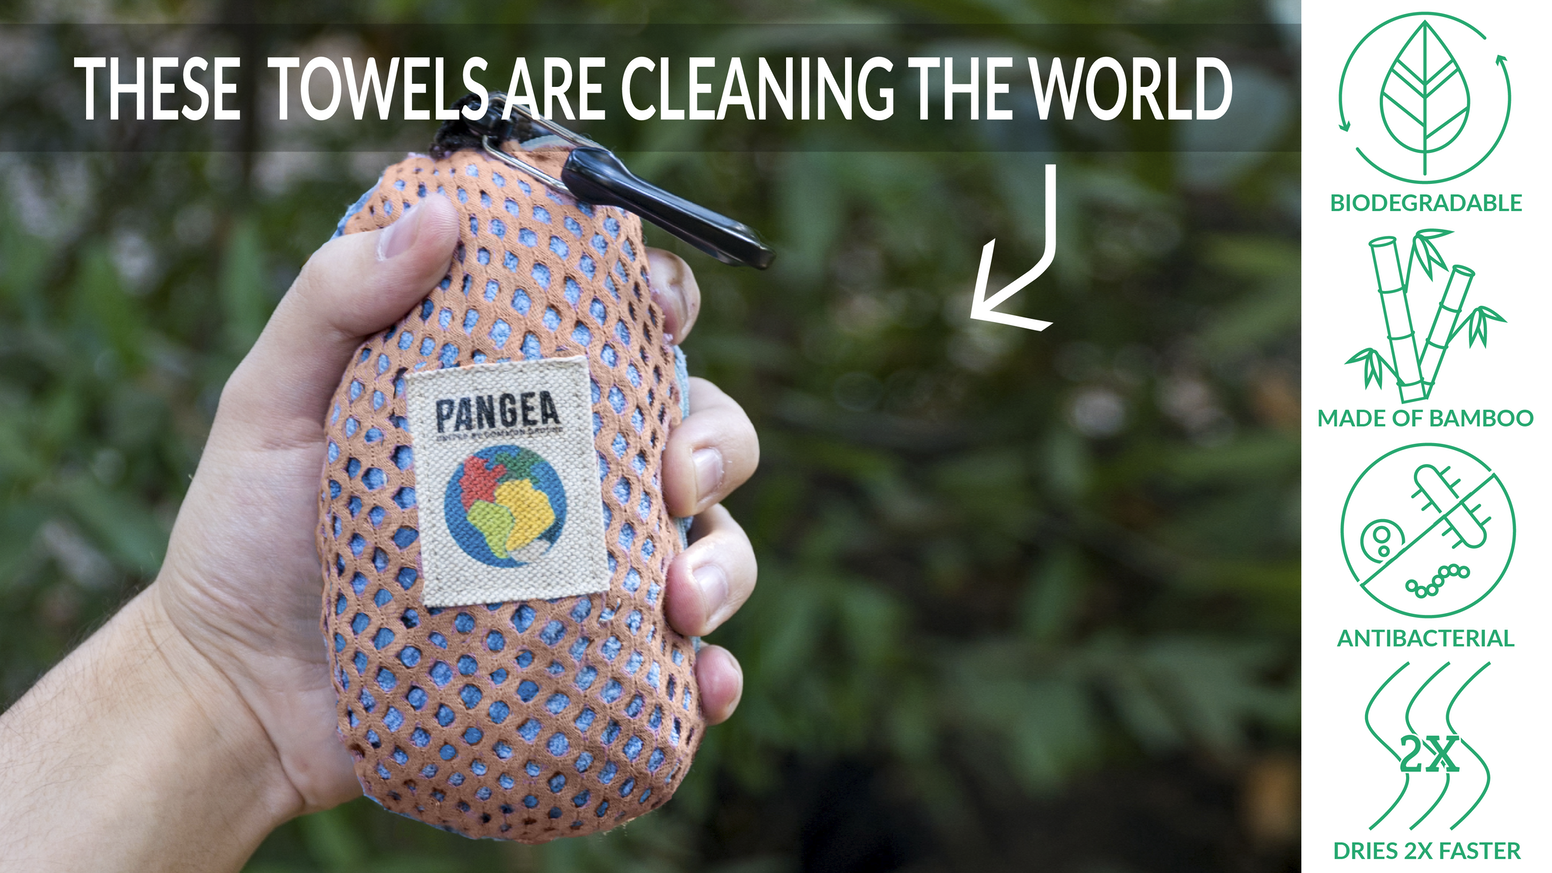 A sustainable and biodegradable towel to clean the world